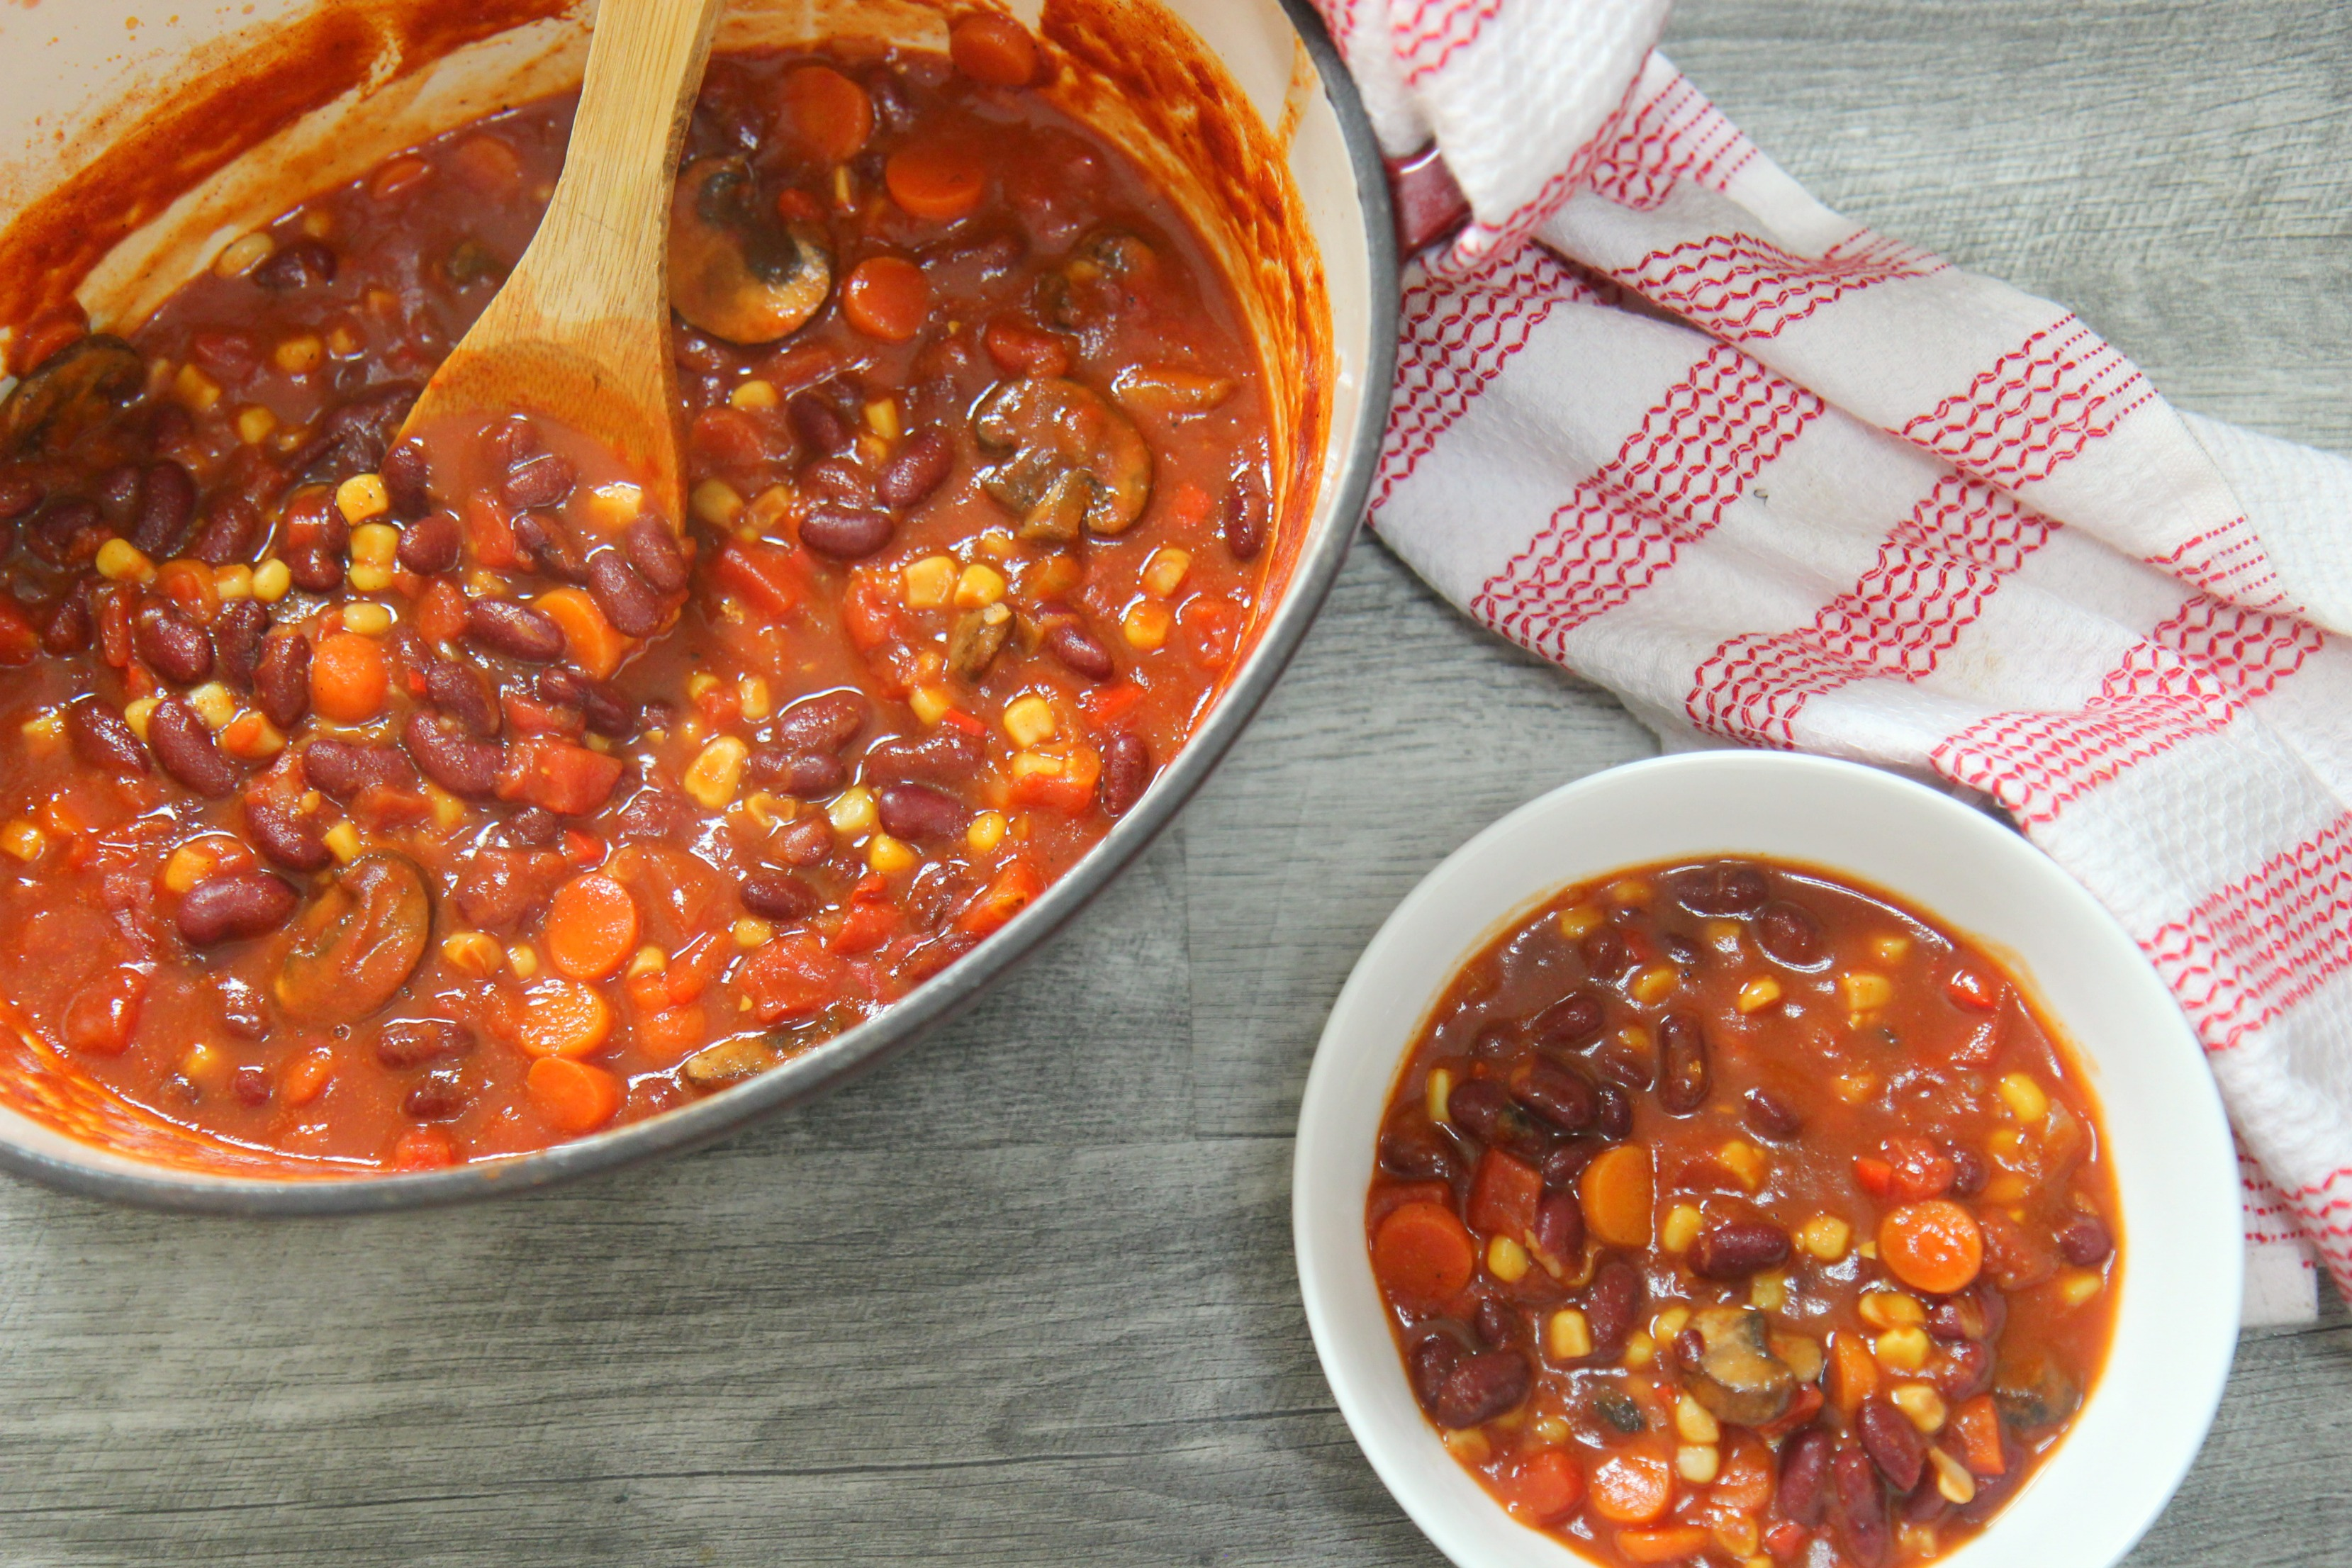 This easy vegetarian chili recipe is a perfect cold winter night meal